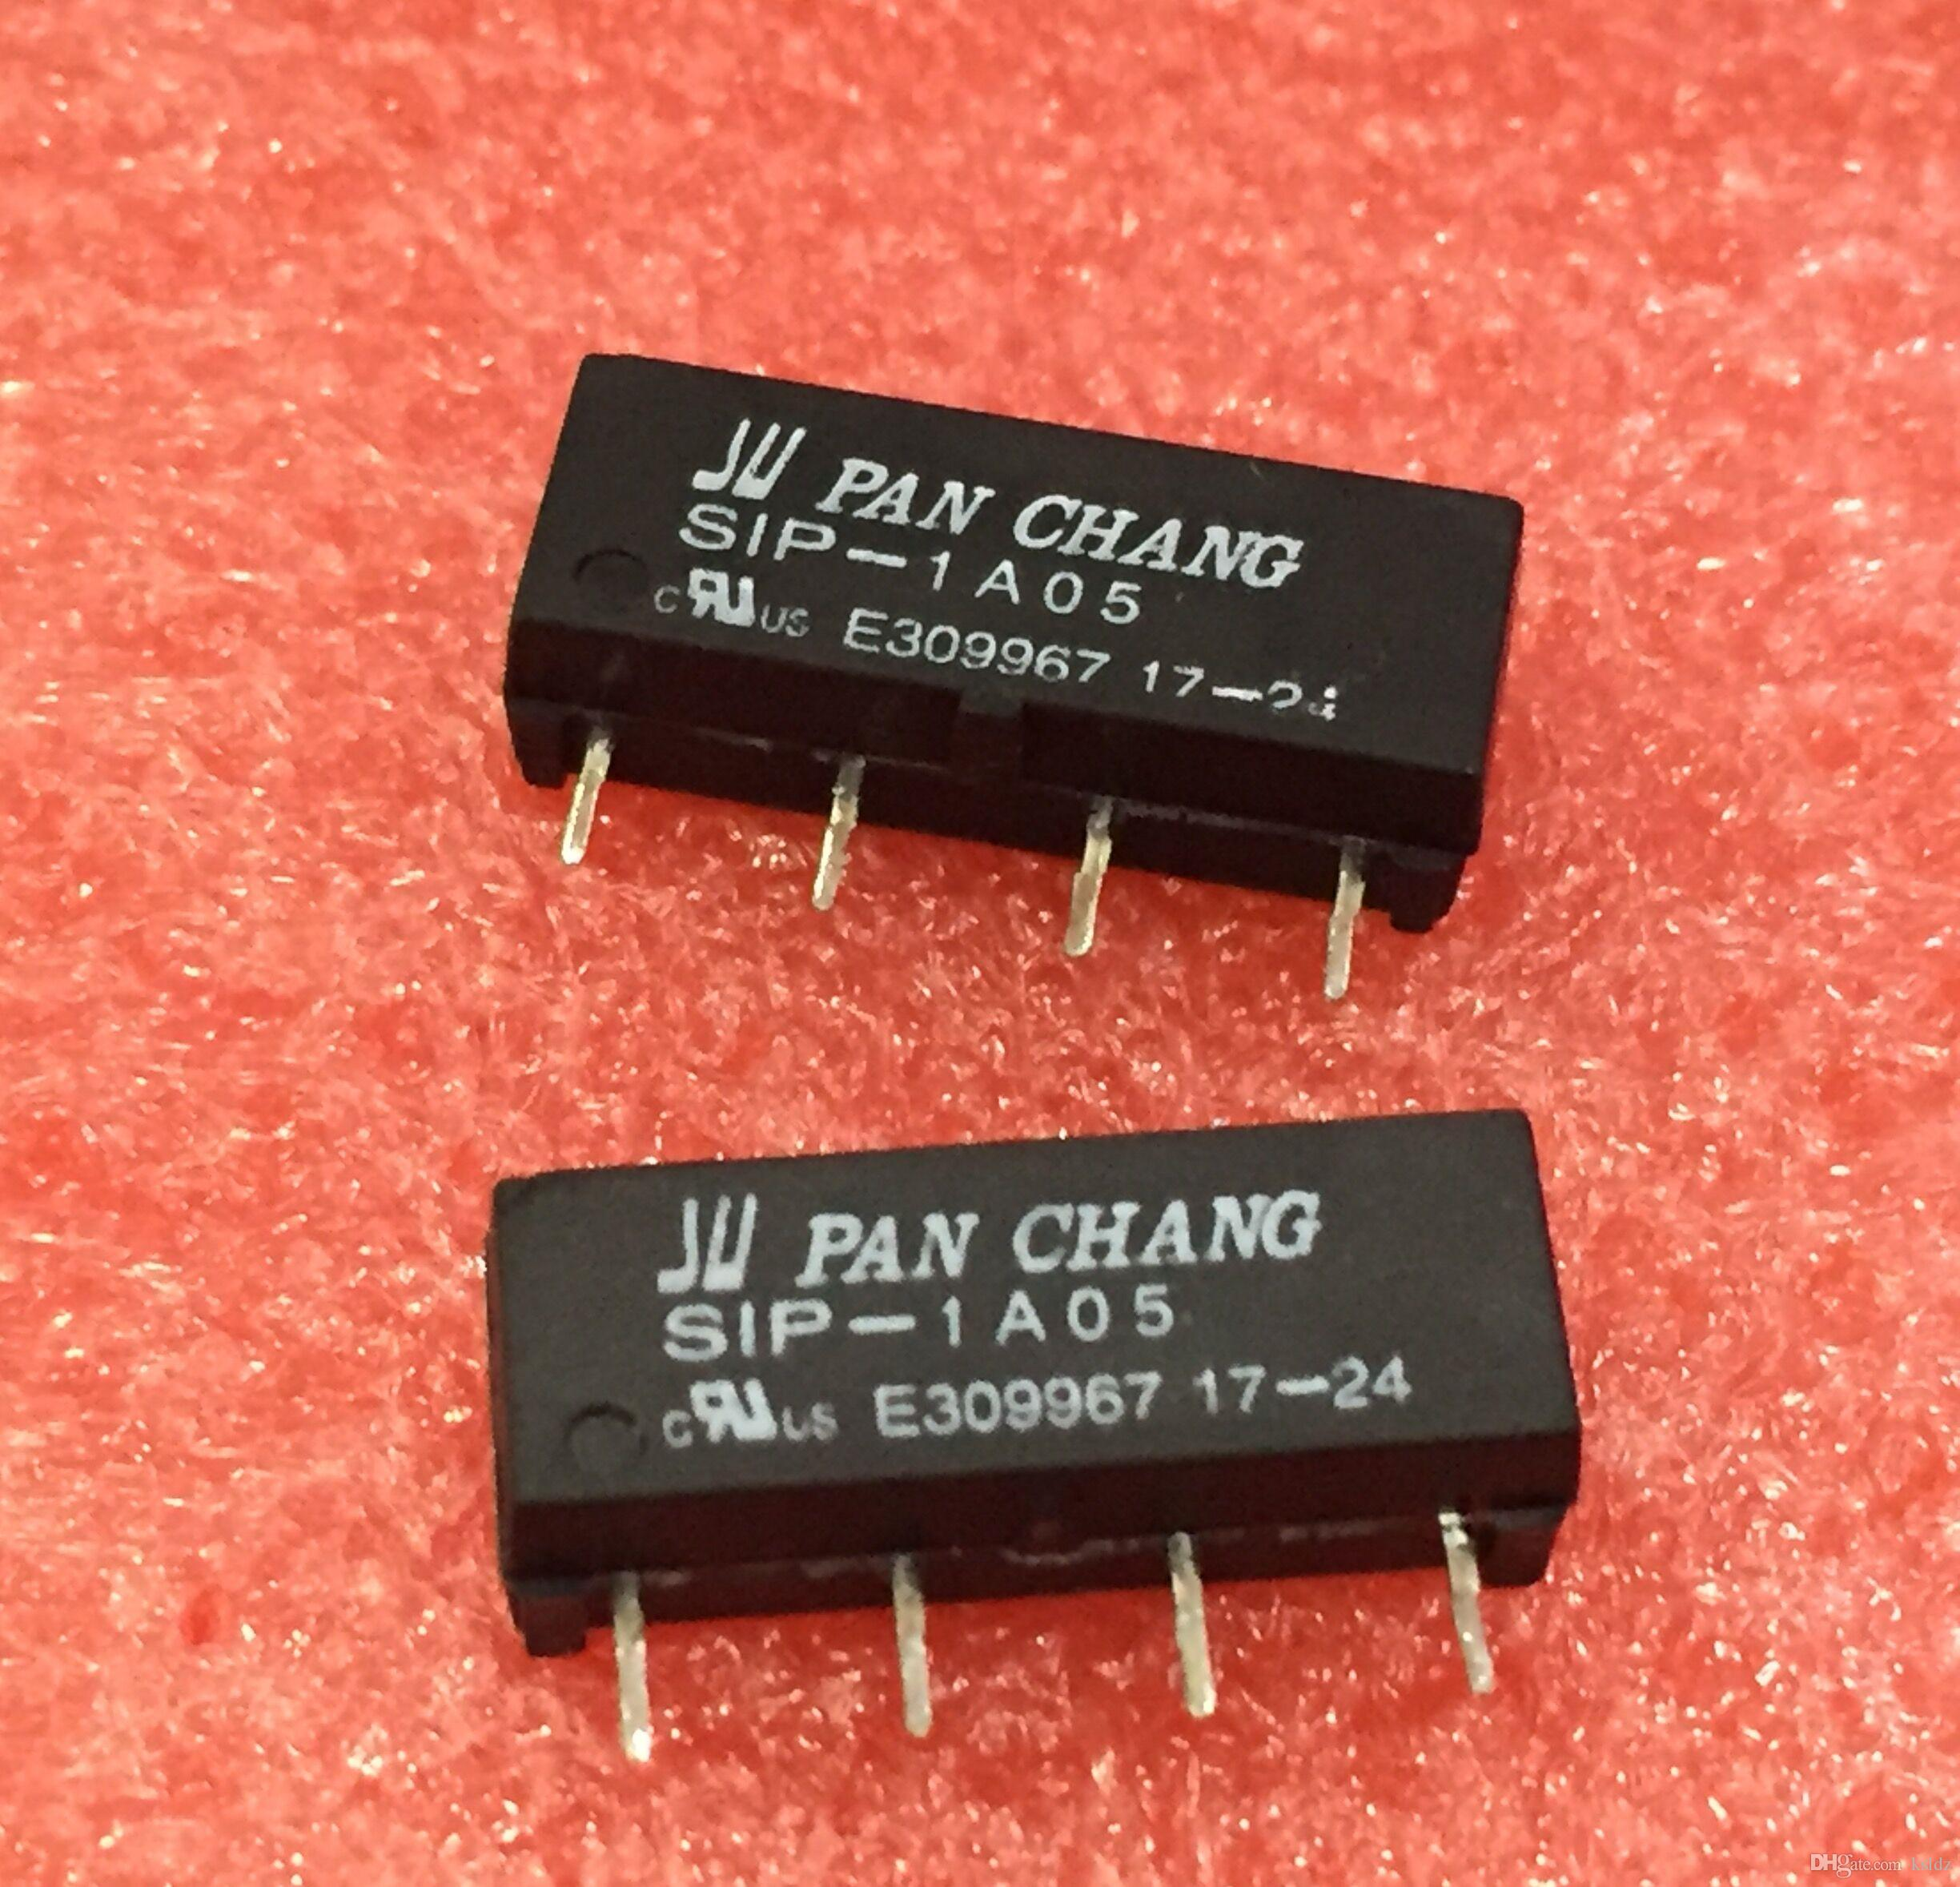 100original New Pan Chang Sip 1a05 5vdc 1a12 12vdc 1a24 Reed Relay Switch Circuit 24vdc 1a Zip 4 Dry Online With 1143 Piece On